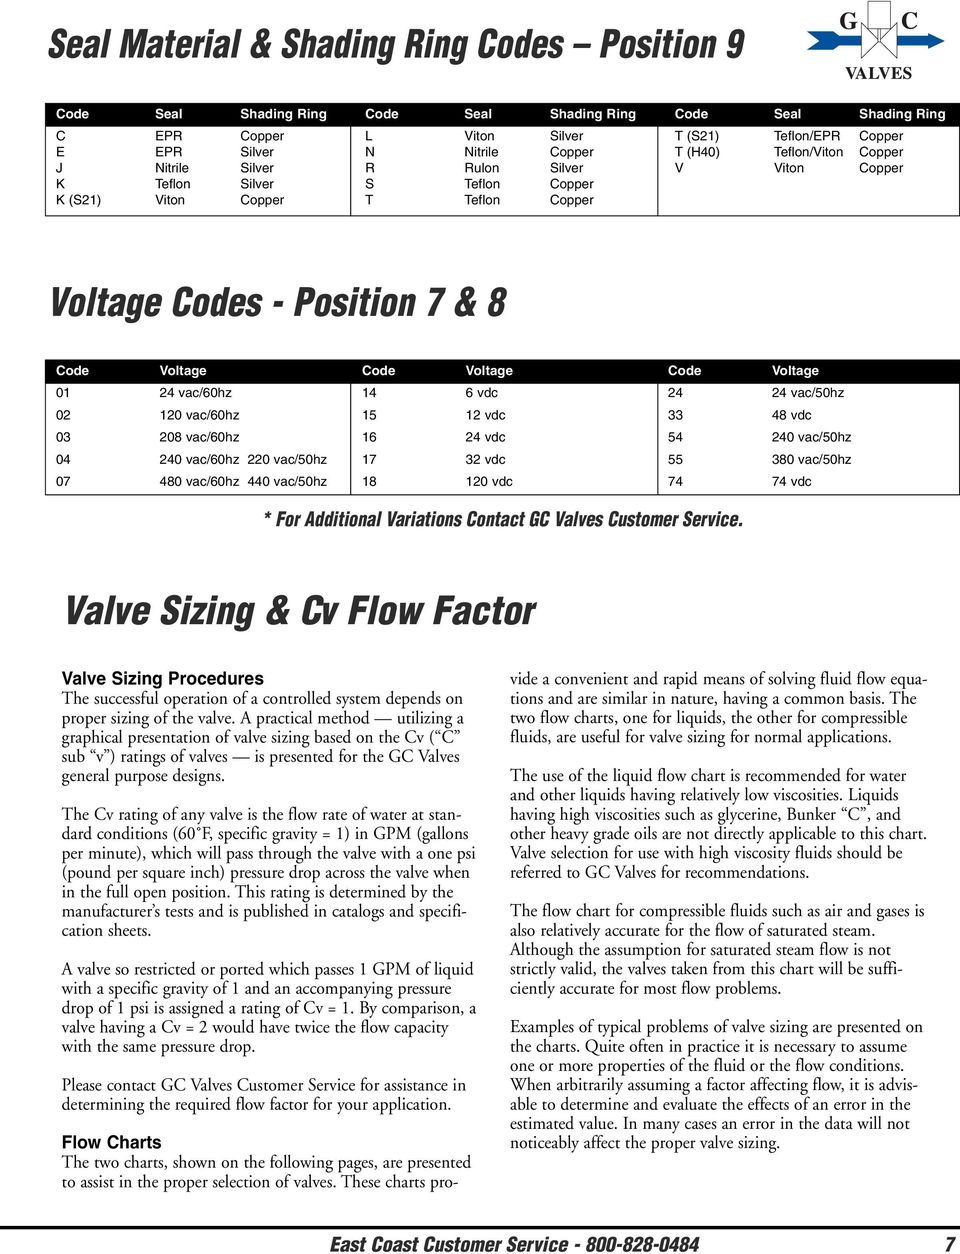 Engineering Guide and Valve Selection Information - PDF on